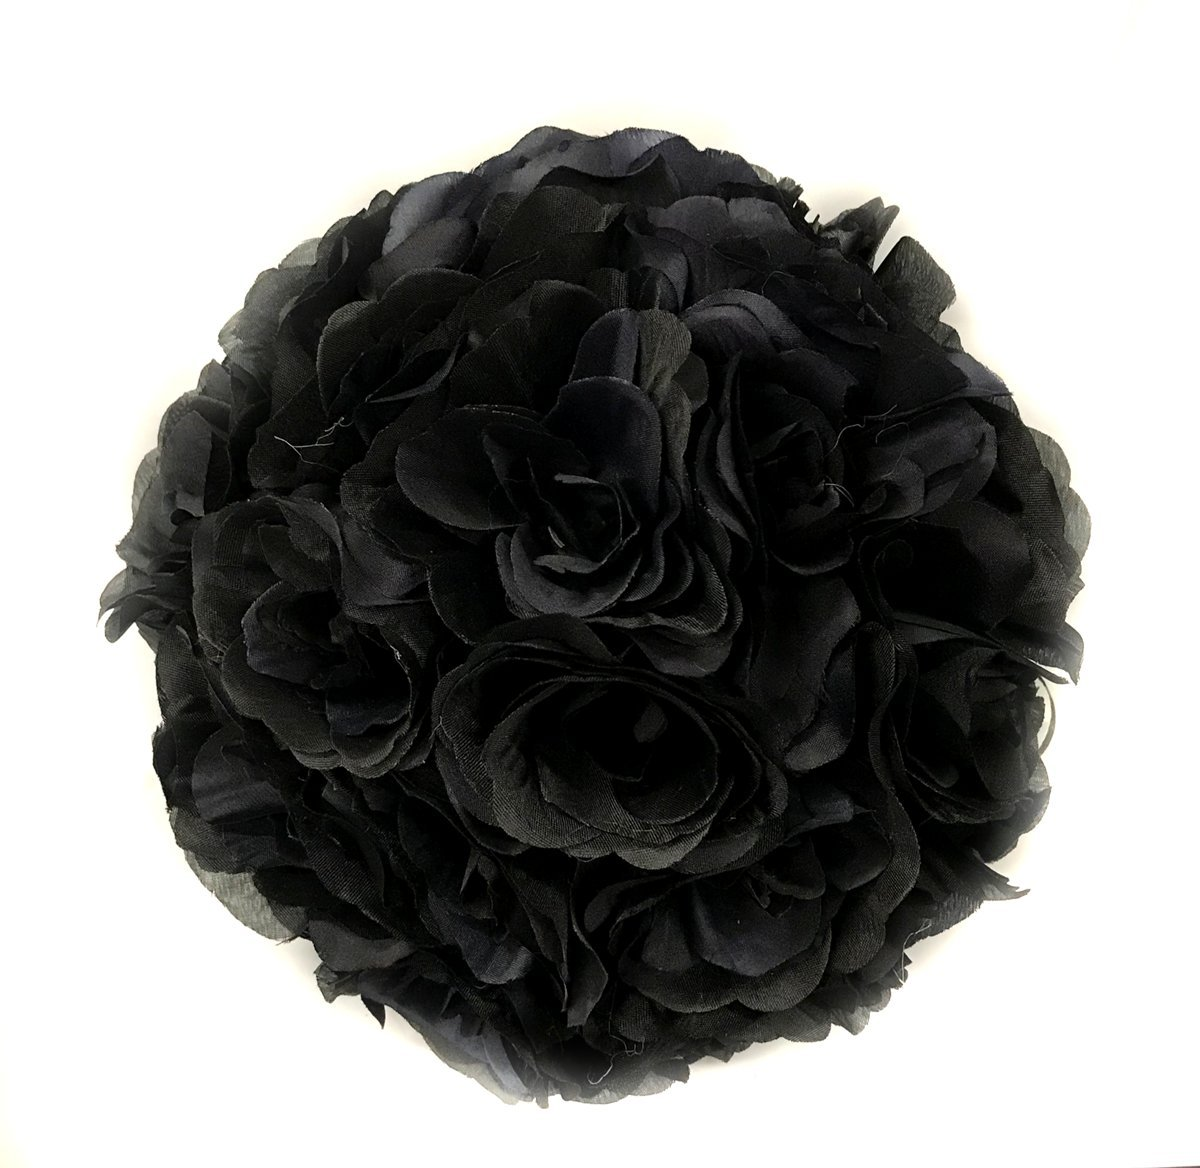 Ben-Collection-Fabric-Artificial-Flowers-Silk-Rose-Pomander-Wedding-Party-Home-Decoration-Kissing-Ball-Trendy-Color-Simulation-Flower-Black-25cm